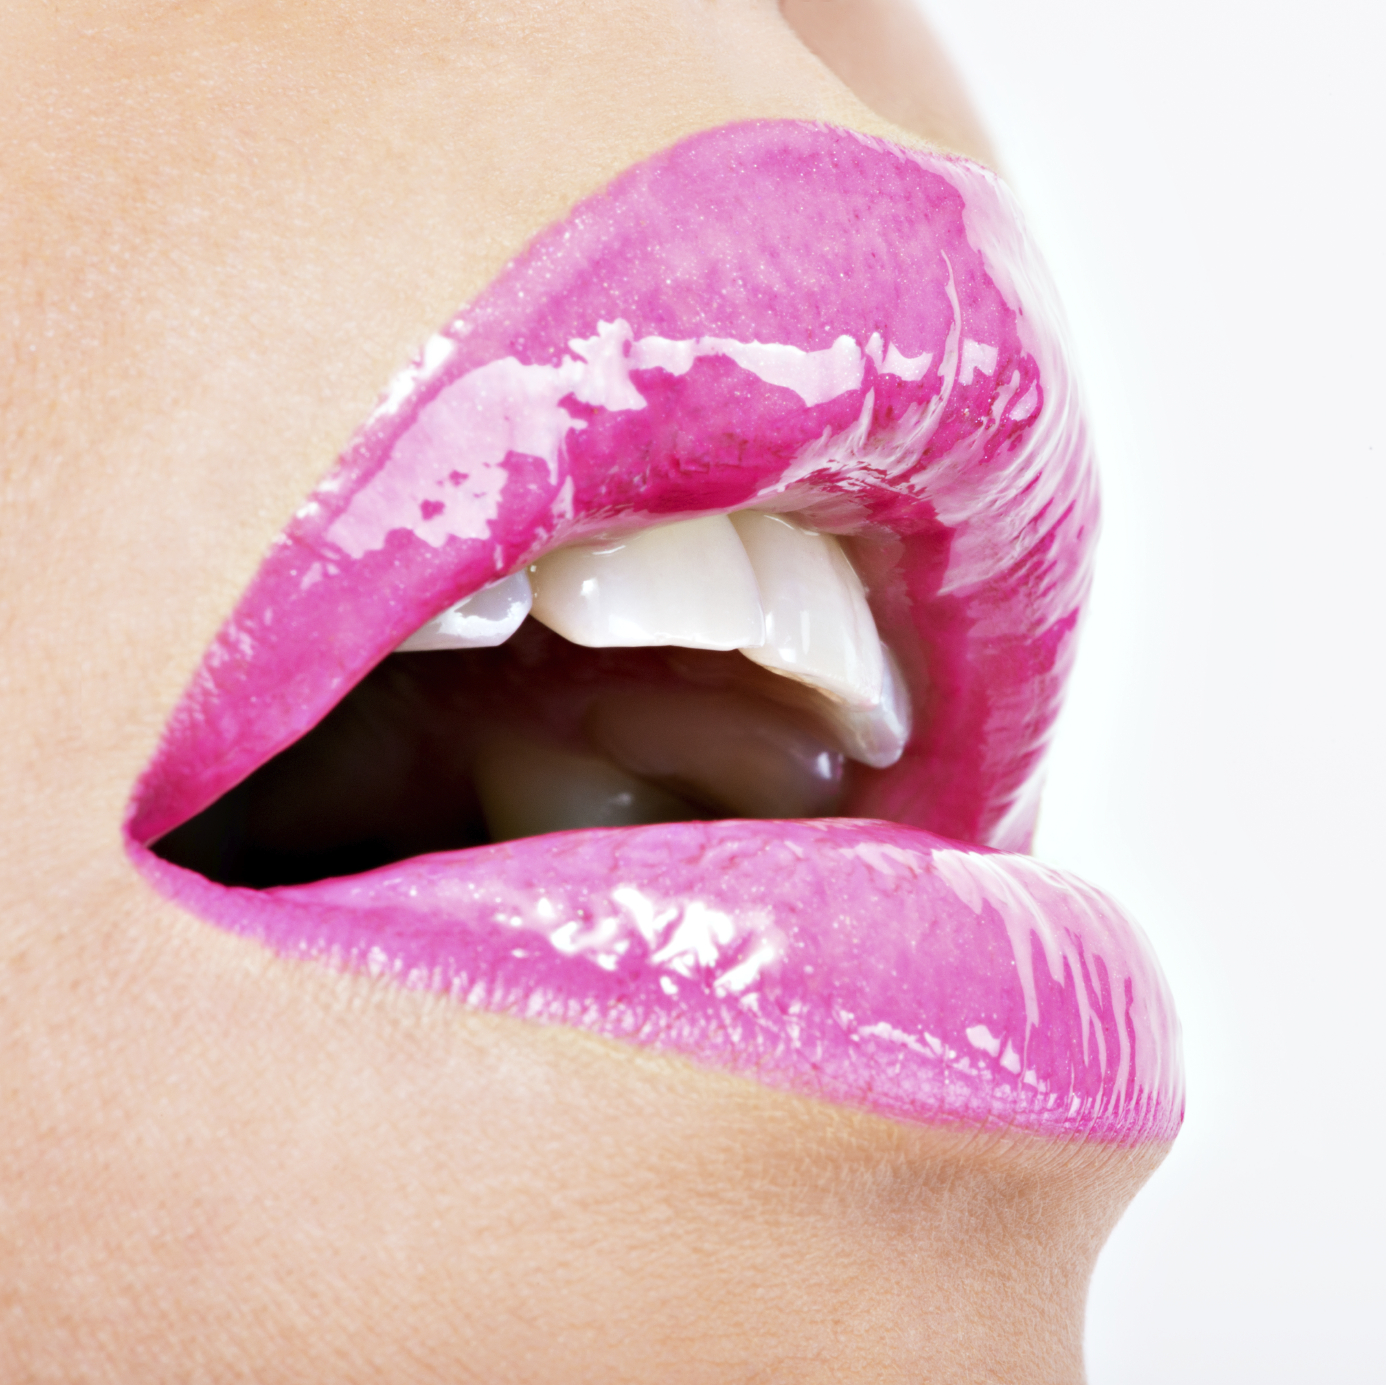 Closeup-Beautiful-female-lips-with-pink--lipstick-000050636466_Medium